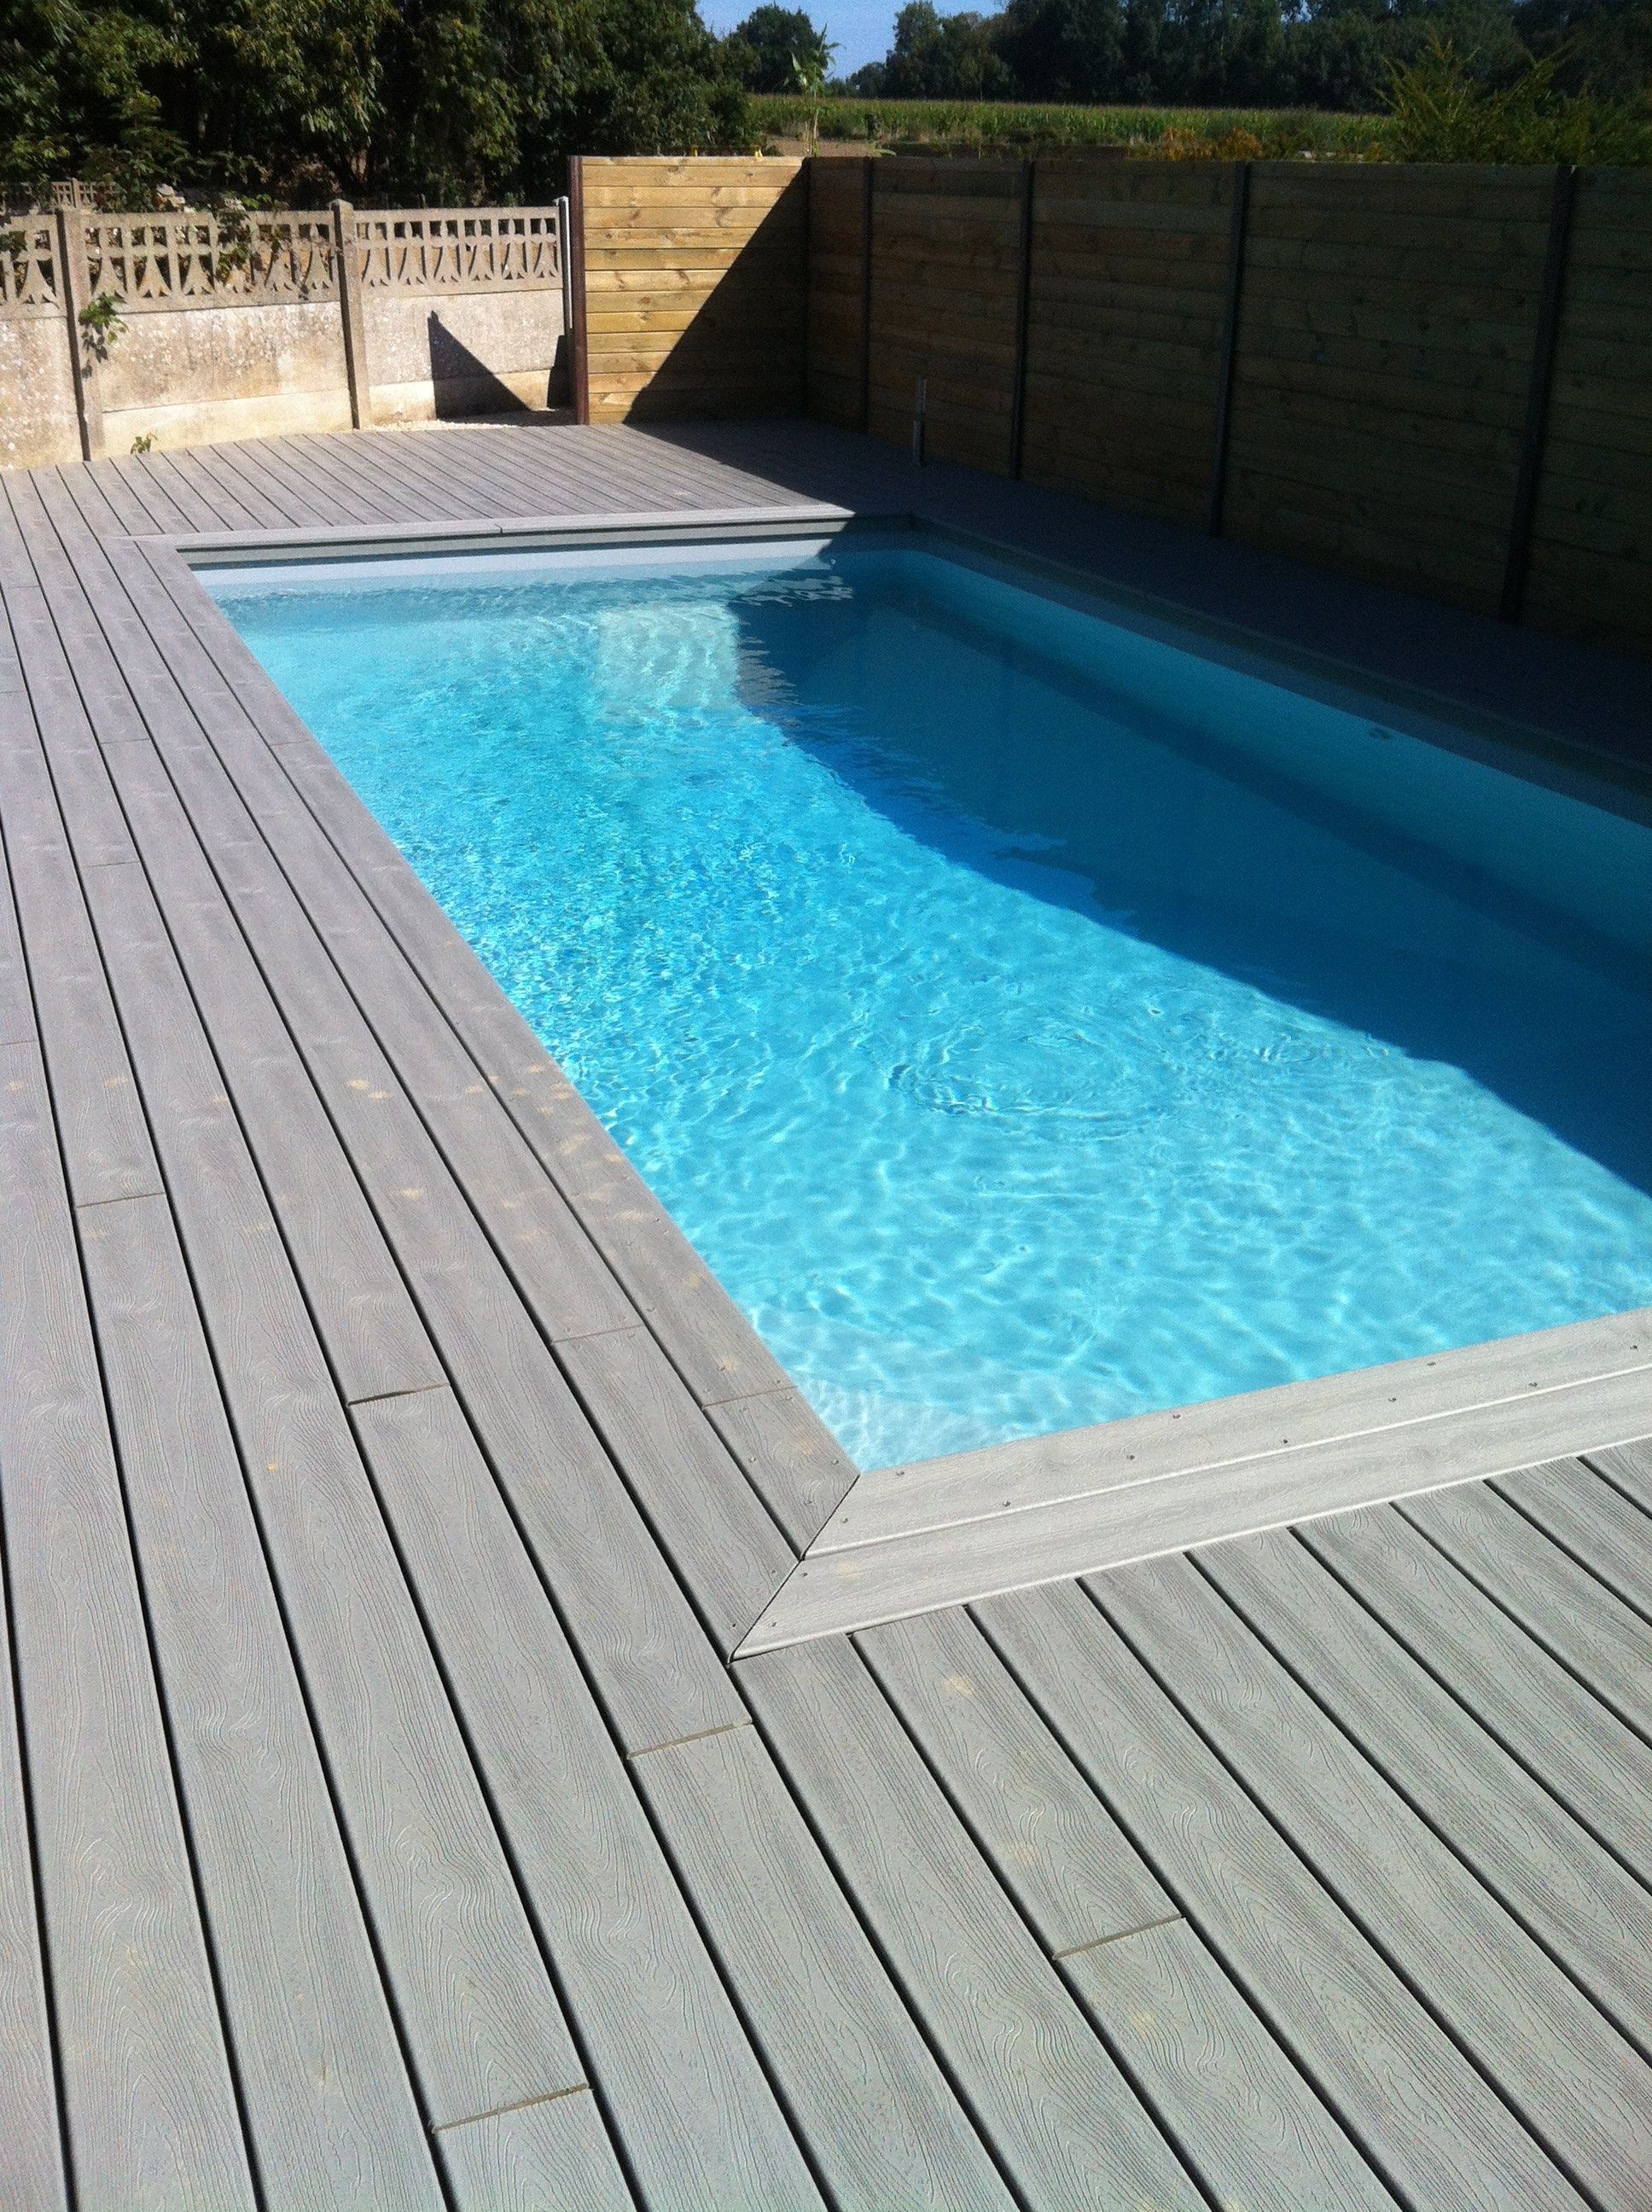 terrasse bois composite piscine jpg (1936 u00d72592) Pools Pinterest Swimming pools, Pool spa  # Terrasse Bois Pour Piscine